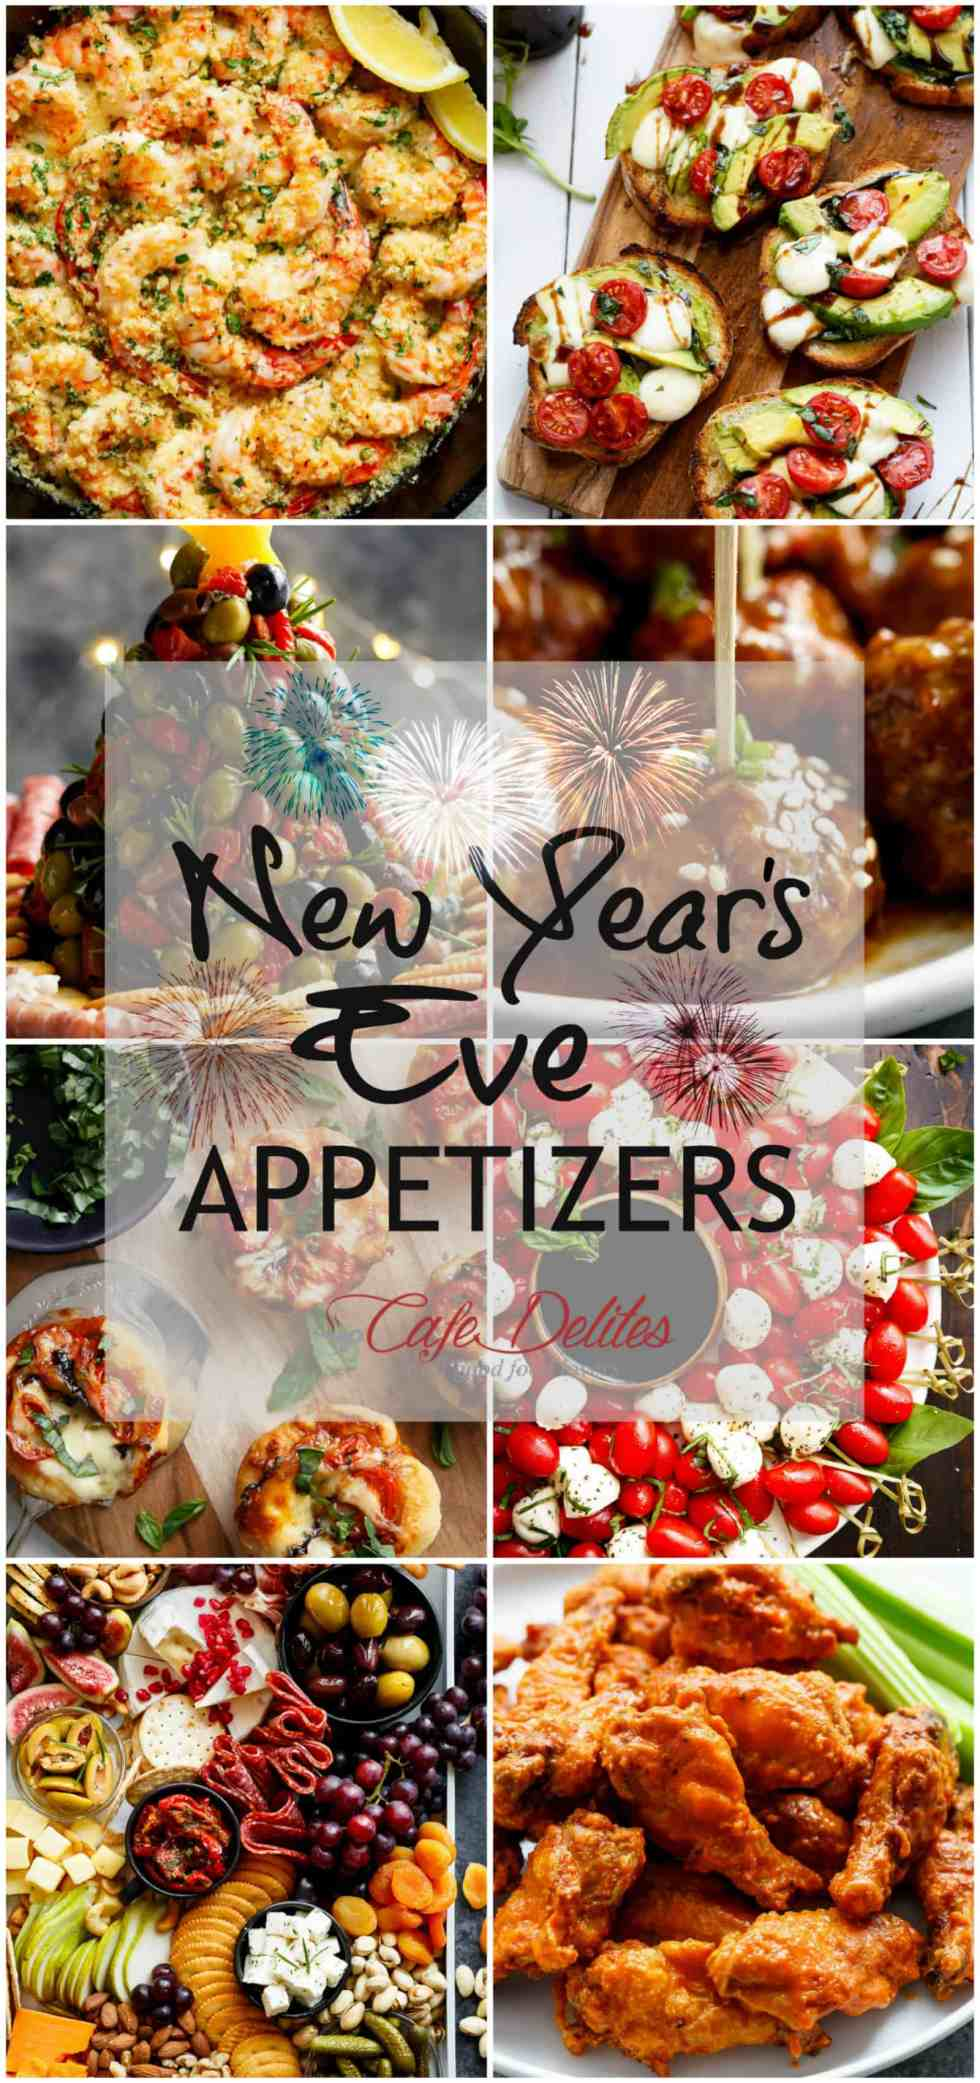 The BEST New Years Appetizers! | cafedelites.com